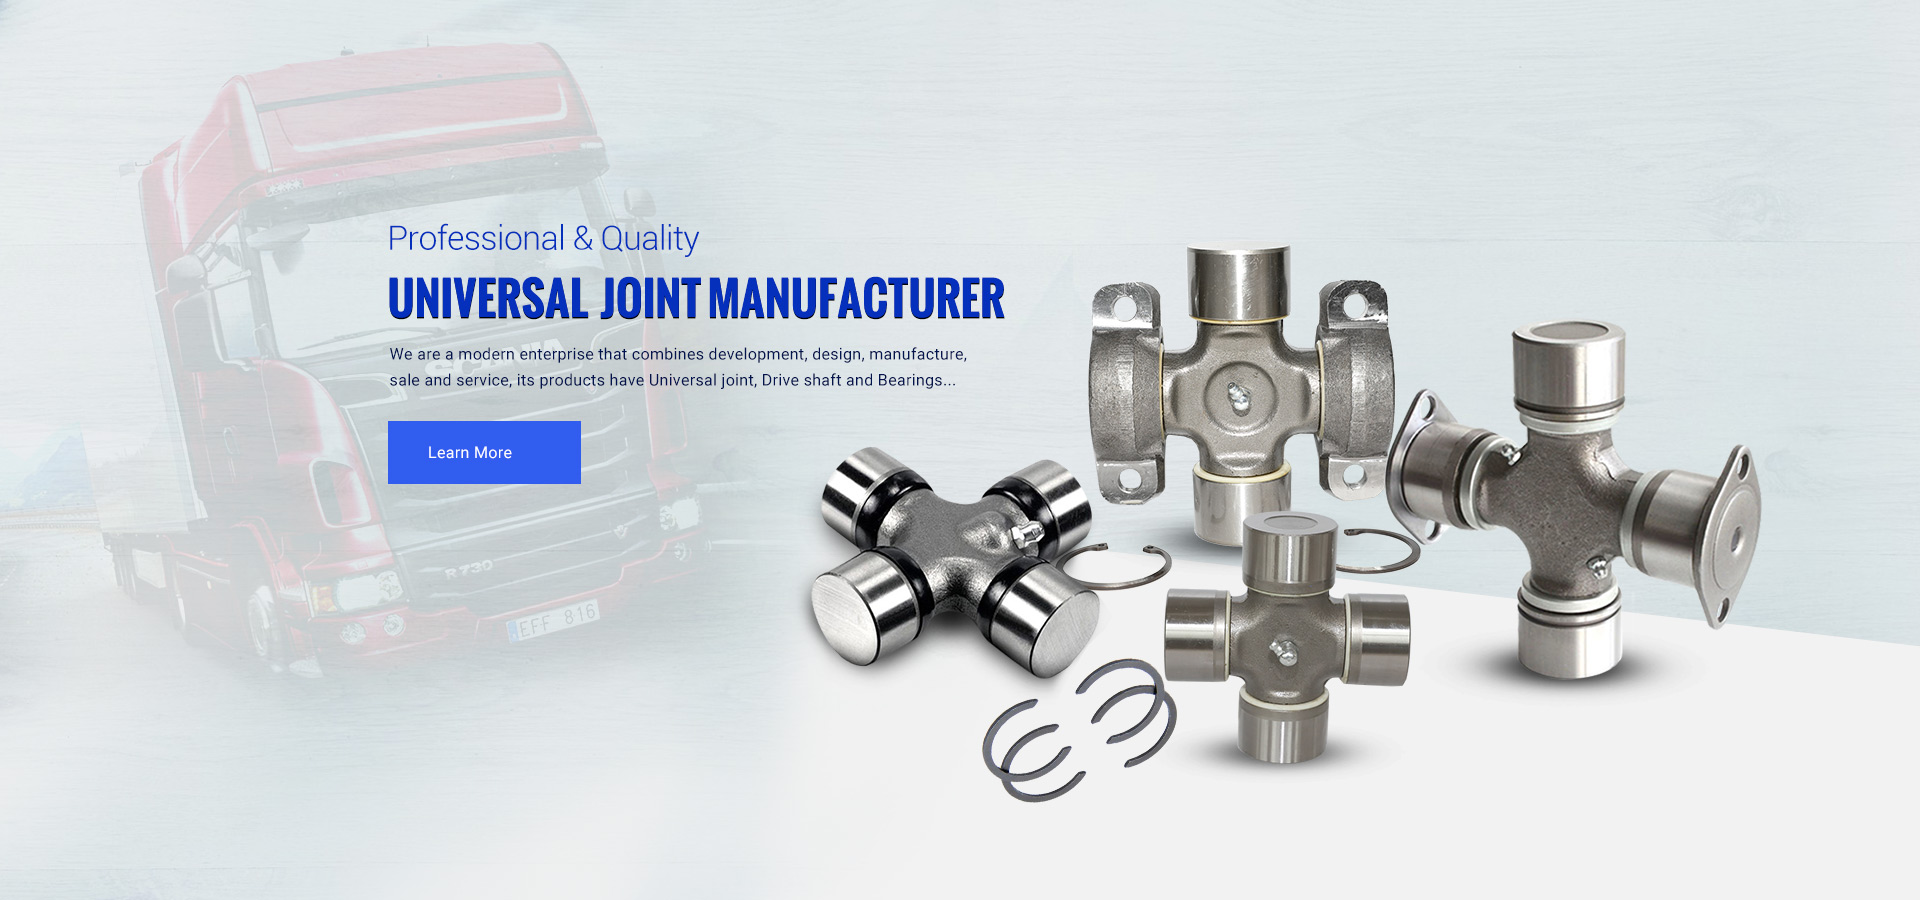 Universal joint, drive shaft and Bearings